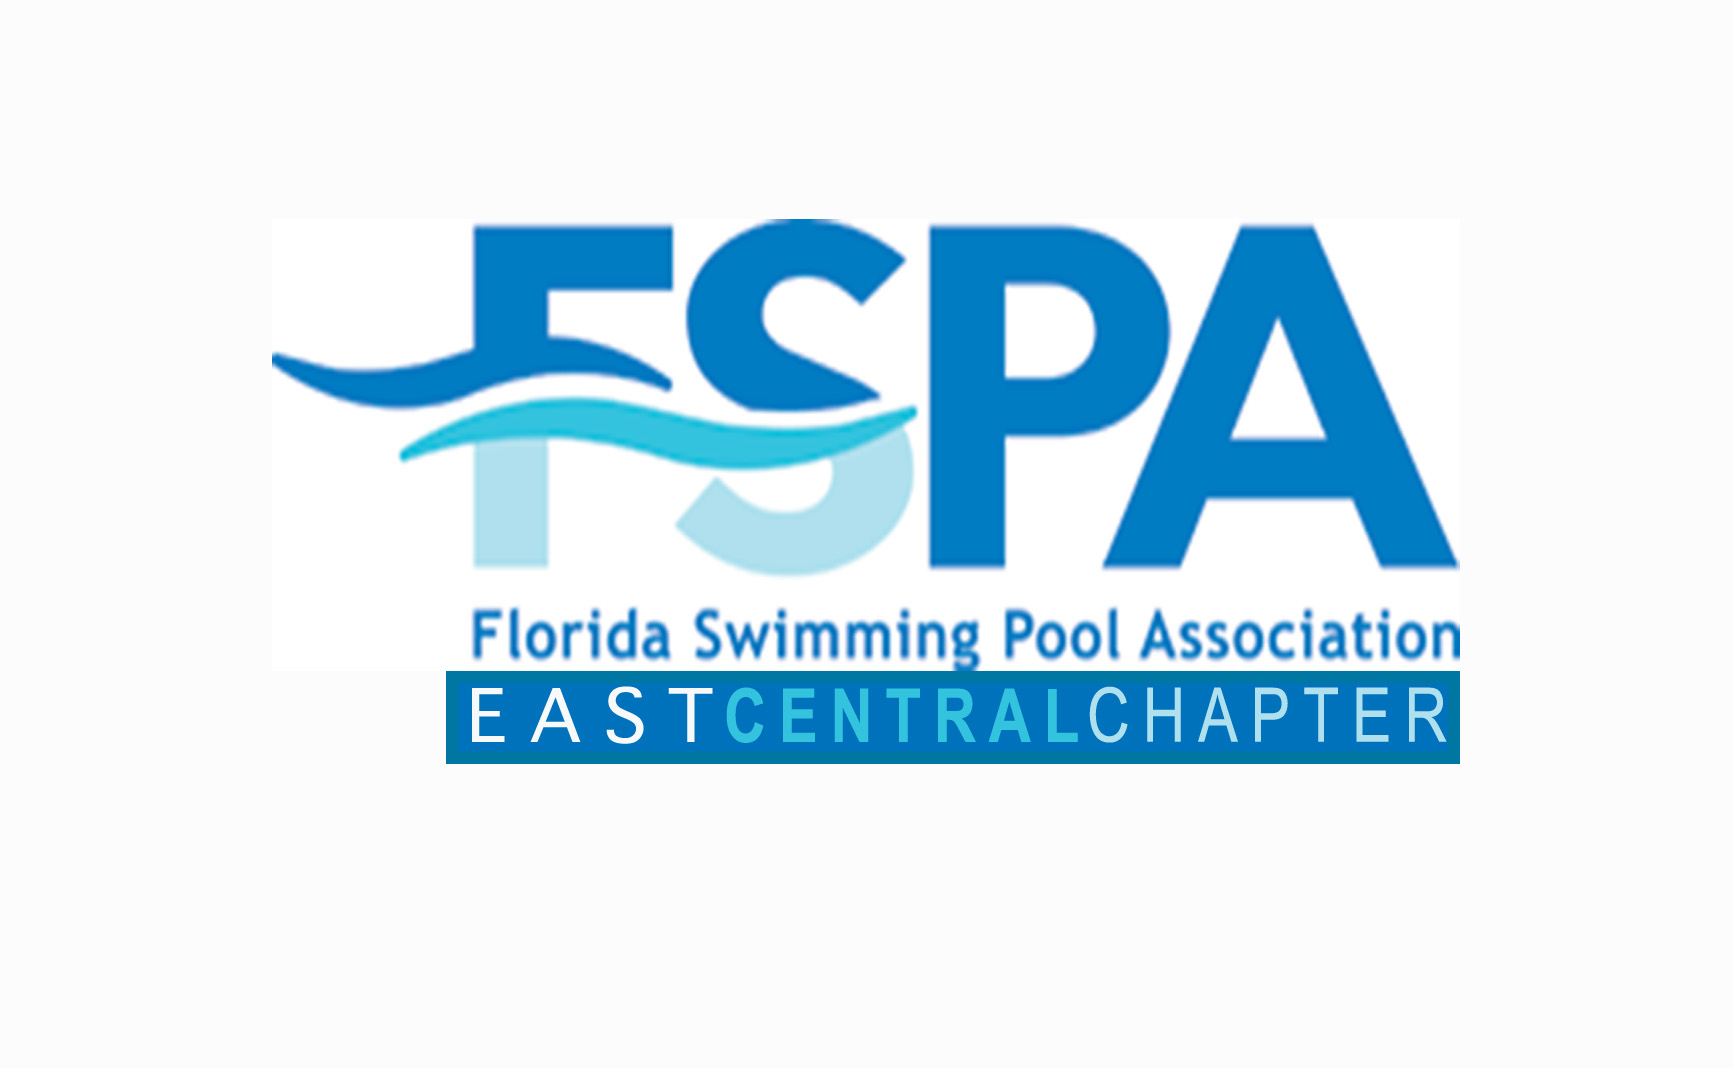 Florida Swimming Pool Association